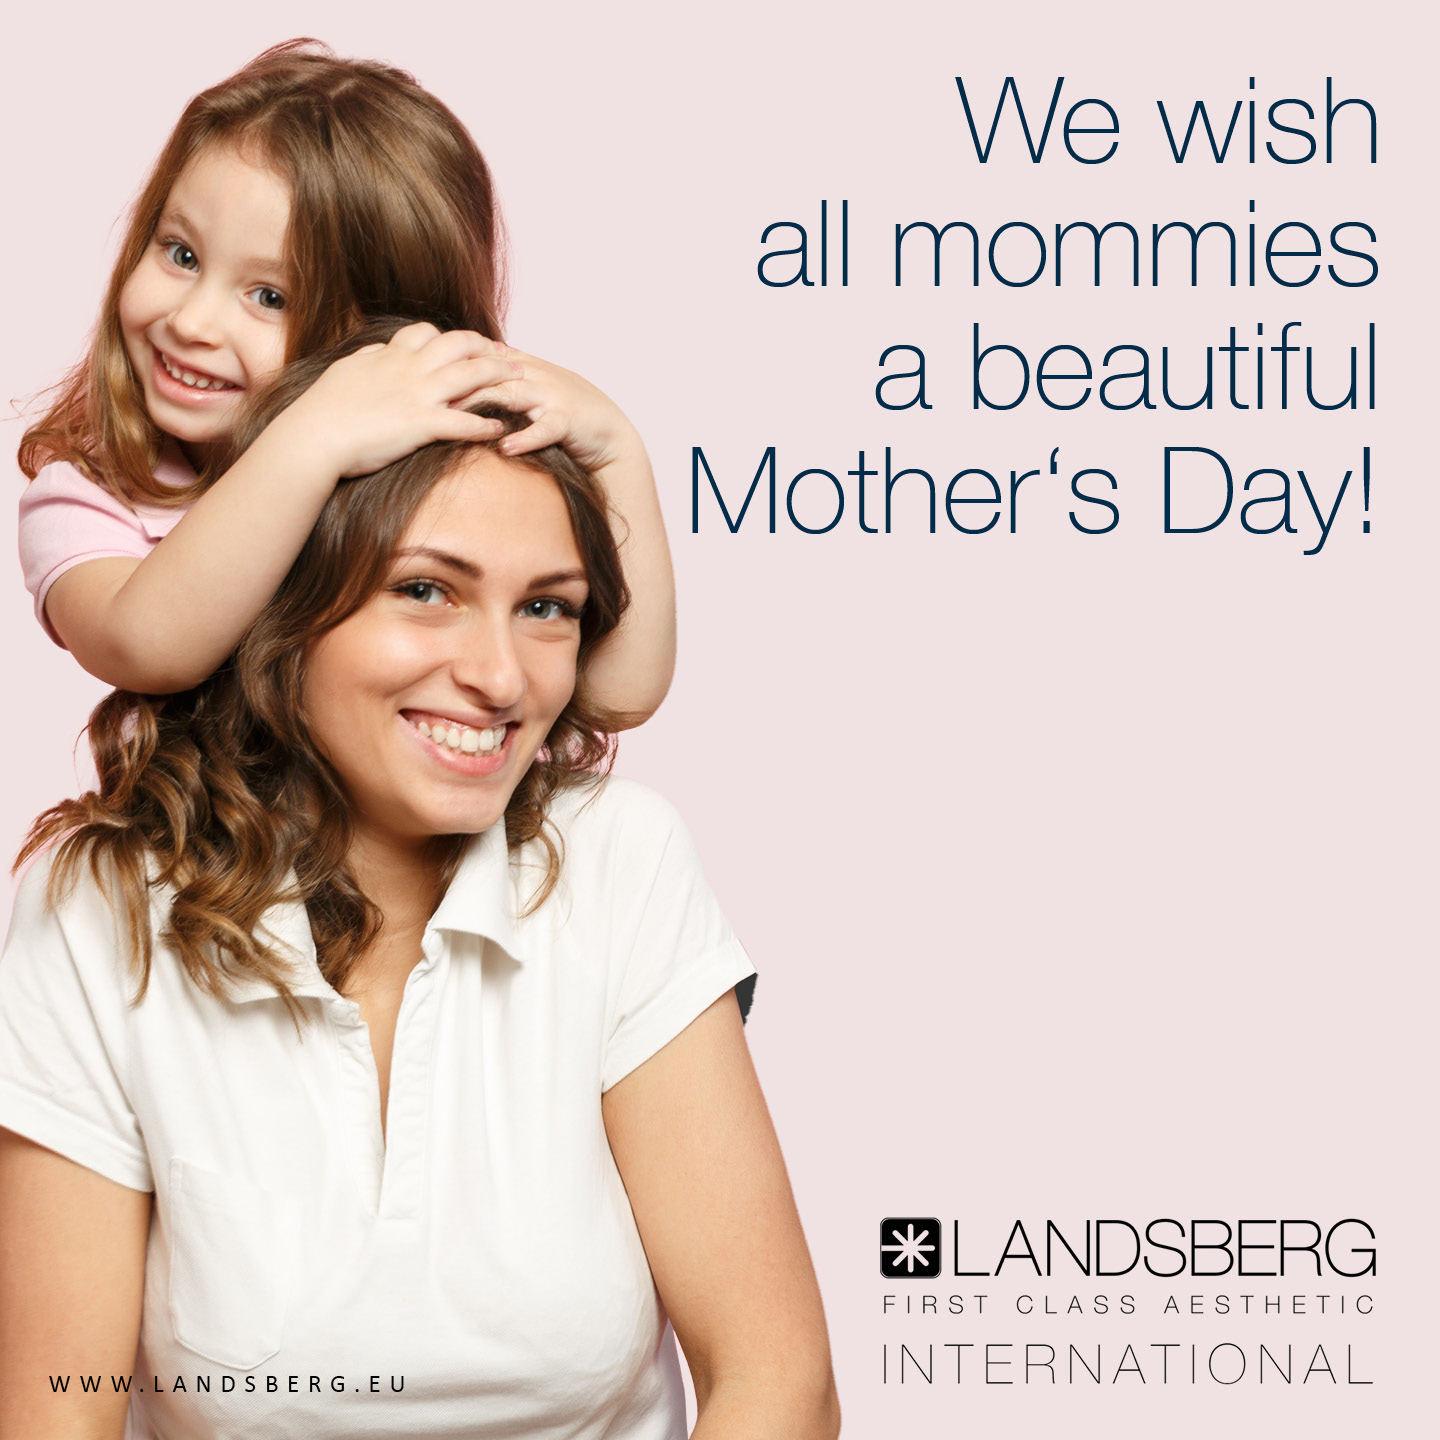 Sunday is Mother's Day!